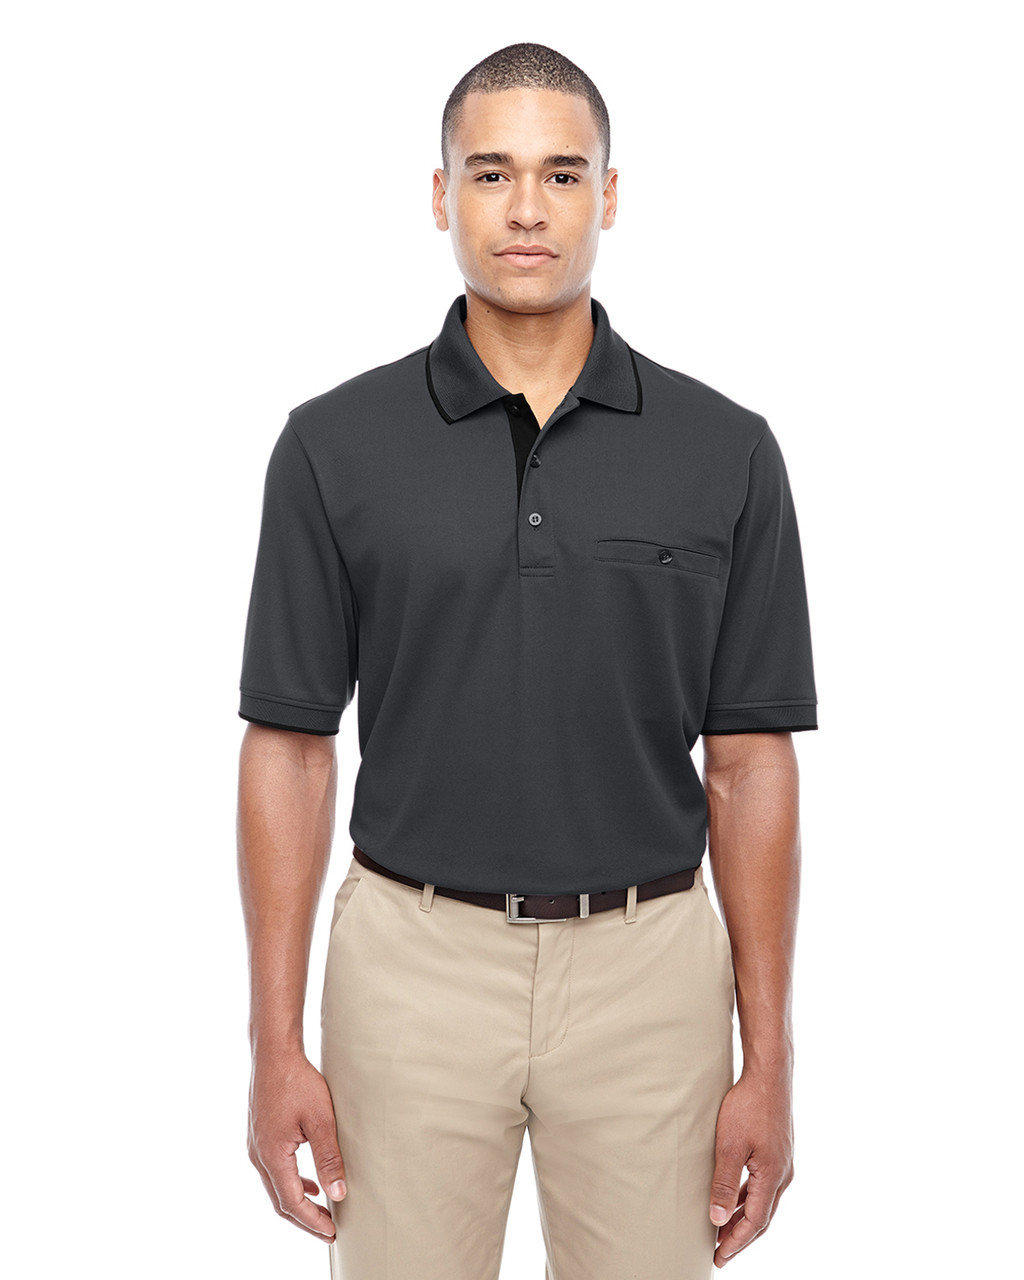 Carbon 88222 Ash City - Core 365 Men's Motive Performance Pique Polo Shirt with Tipped Collar   Blankclothing.ca